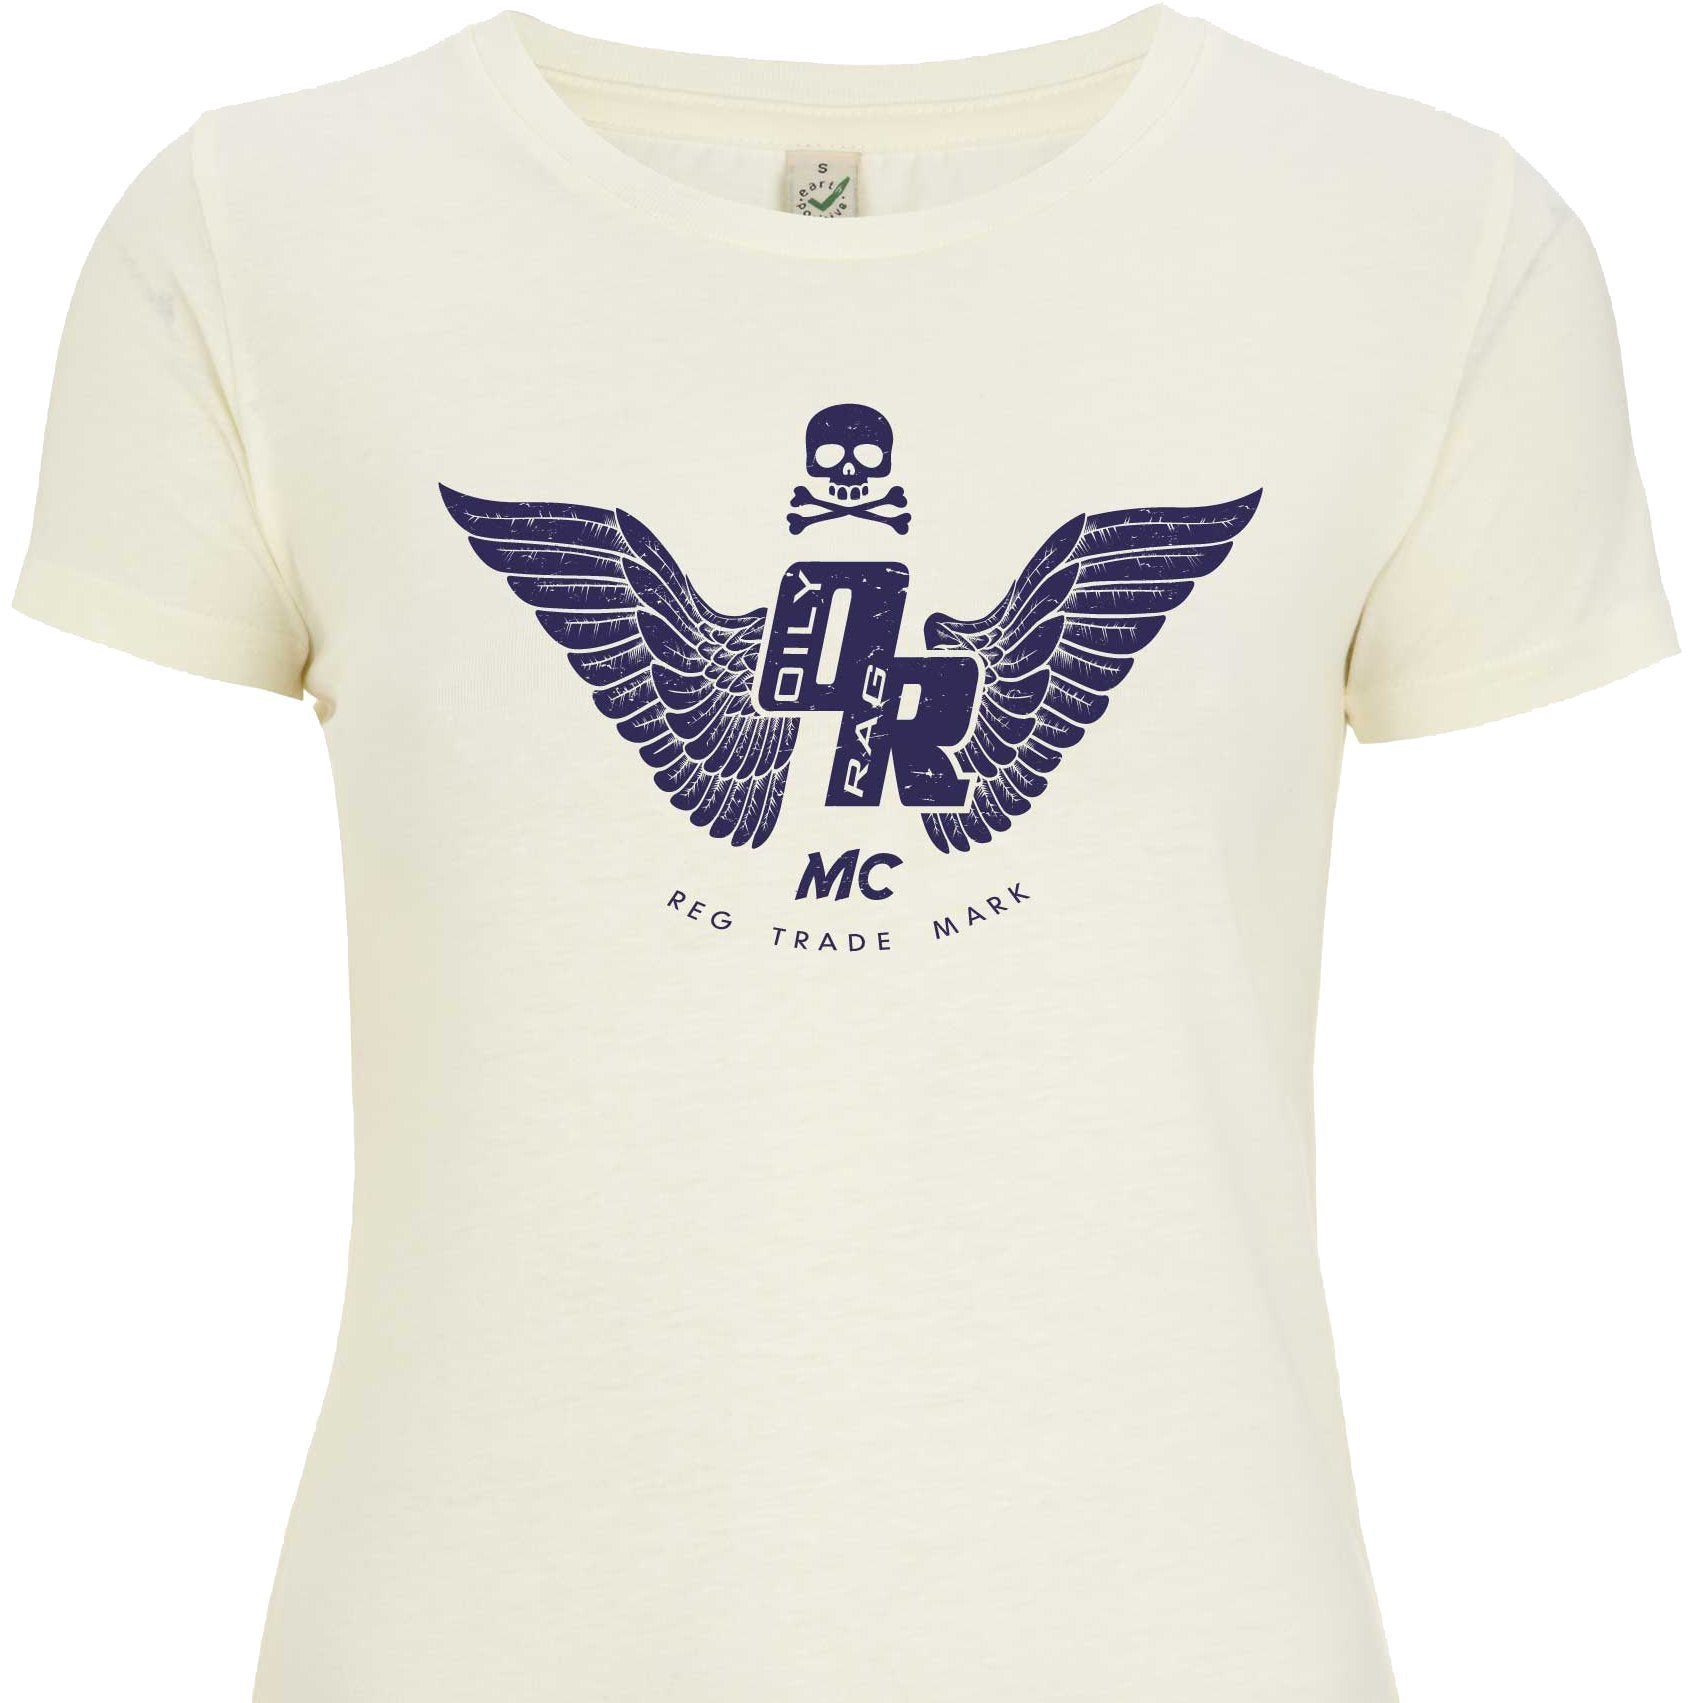 Oily Rag Clothing - Oily Rag Clothing Ladies Motorcycle Club T'Shirt in Linen - T-Shirts - Salt Flats Clothing